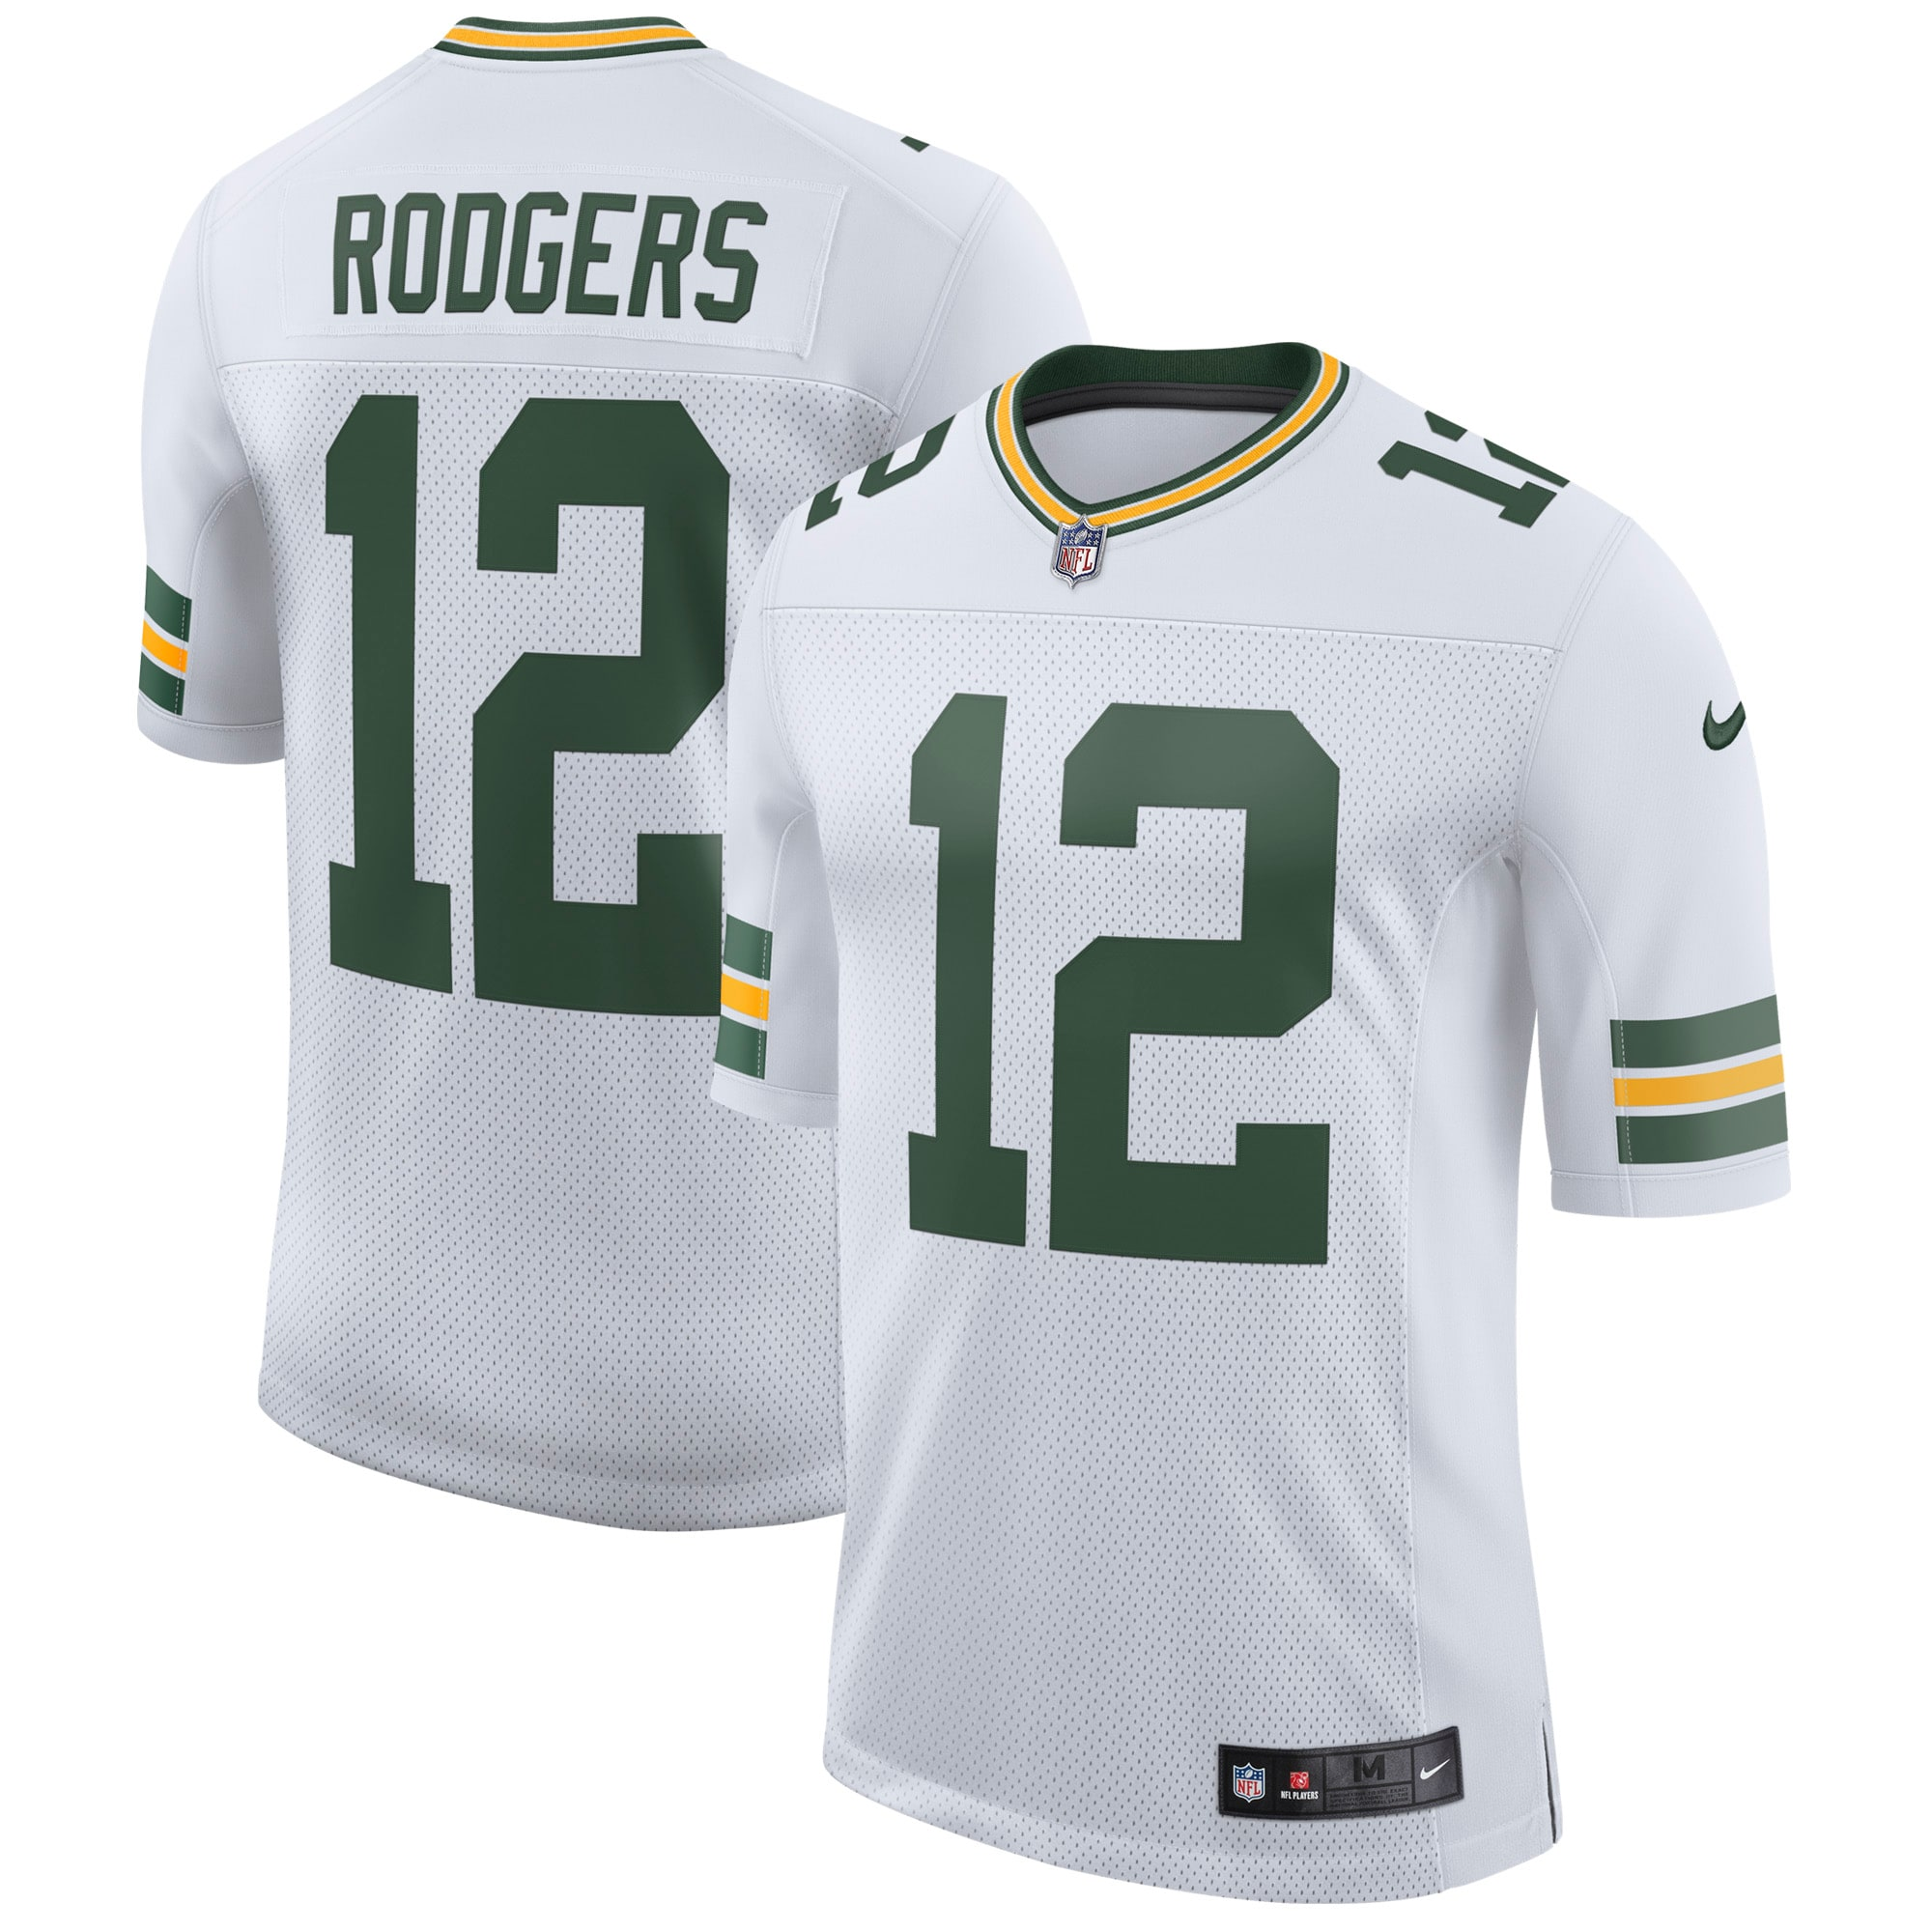 Aaron Rodgers Green Bay Packers Nike Classic Limited Player Jersey - White